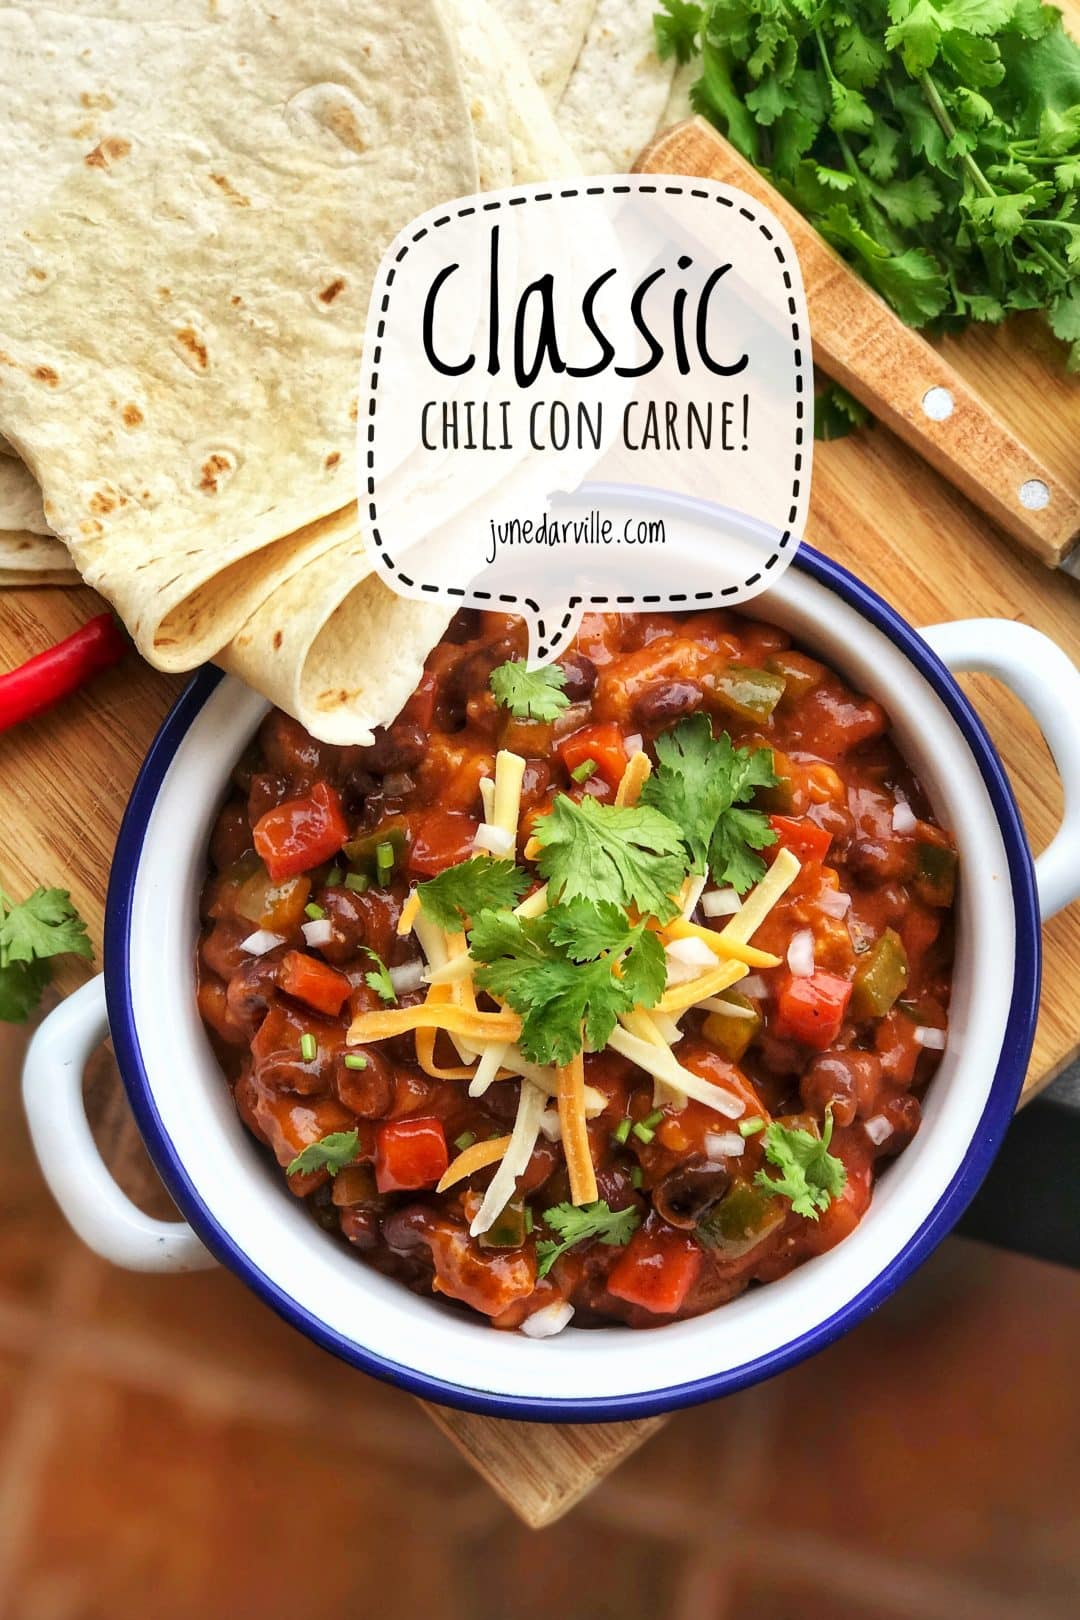 My chili con carne recipe with minced beef, canned tomatoes, cumin, dried chilli, black beans and bell pepper... Just the basic ingredients!